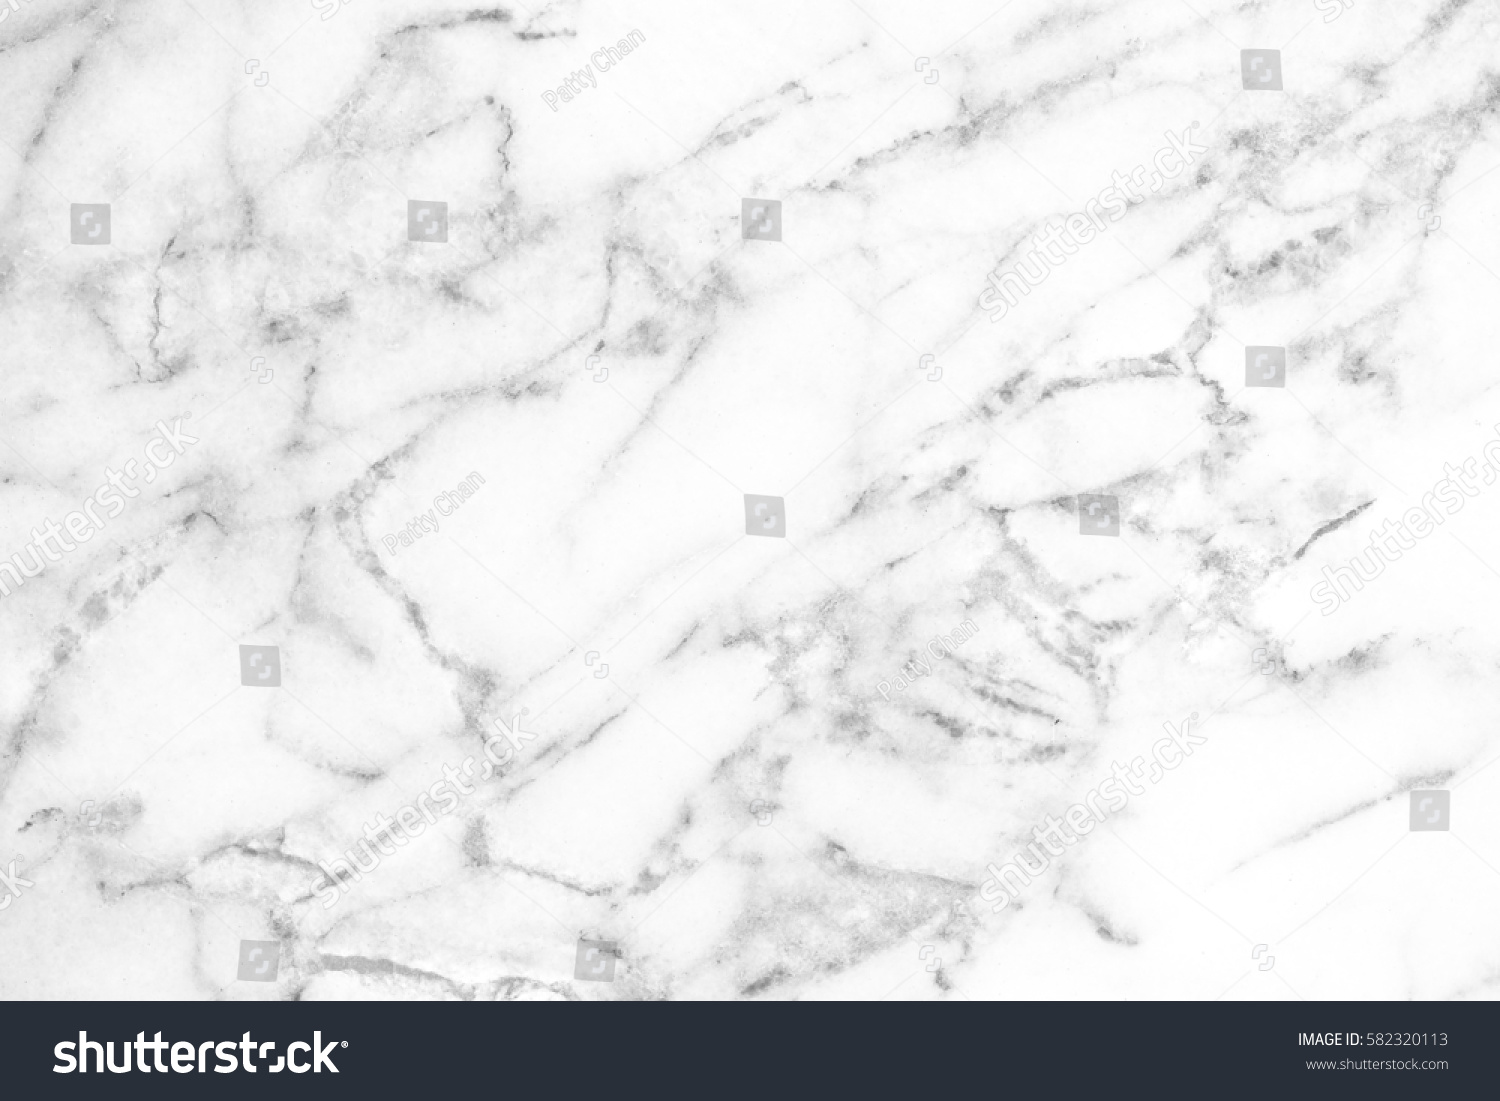 Best Wallpaper High Resolution Marble - stock-photo-natural-white-marble-texture-for-skin-tile-wallpaper-luxurious-background-picture-high-resolution-582320113  Photograph_801089.jpg